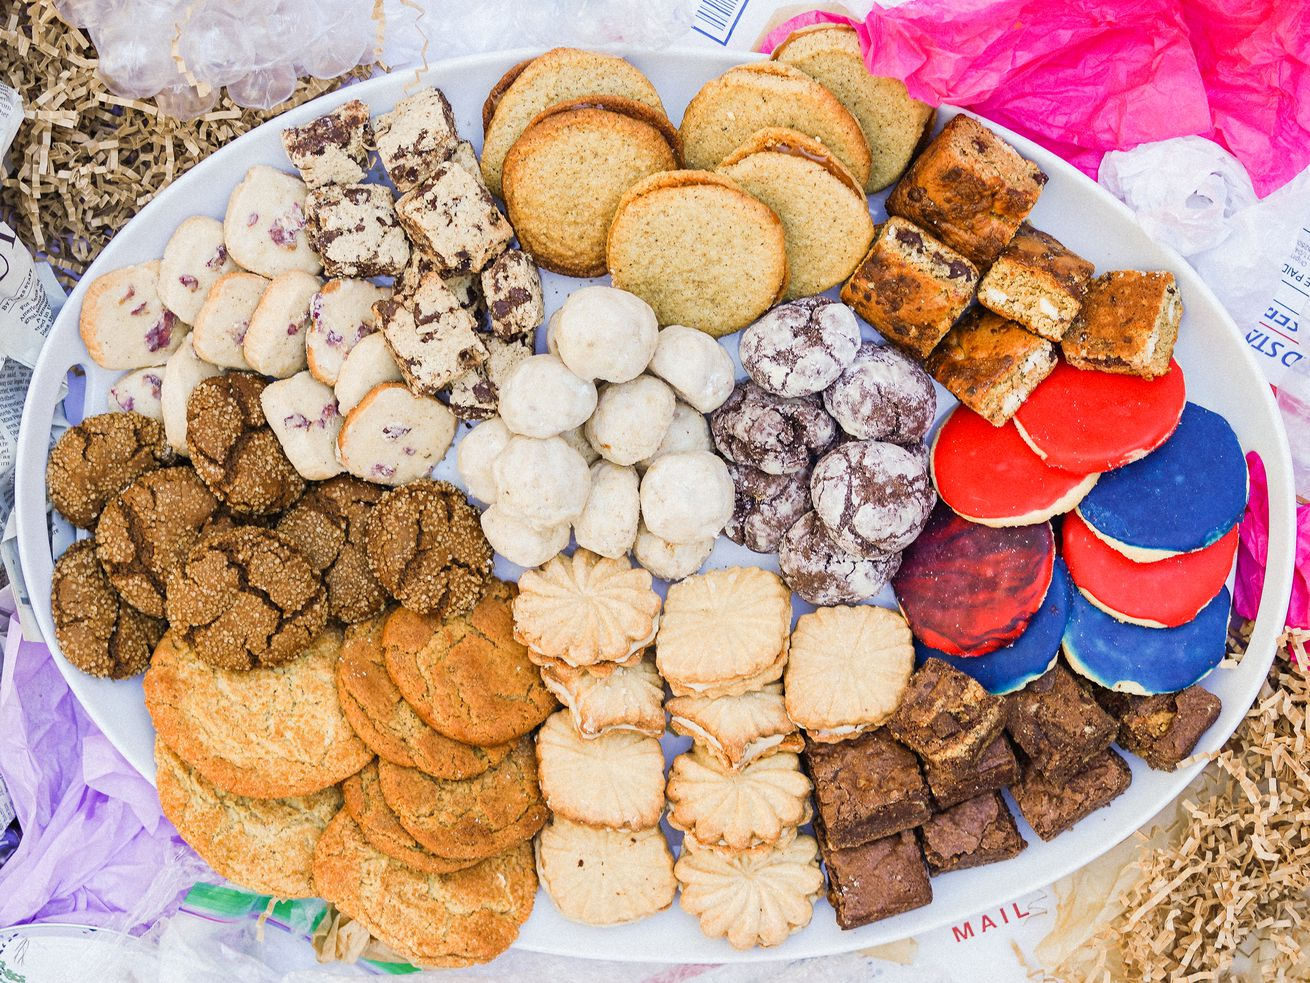 A white oval plate holding 10 different kinds of cookies, surrounded by tissue paper, crumpled-up newspapers, packaging materials, and plastic wrap.